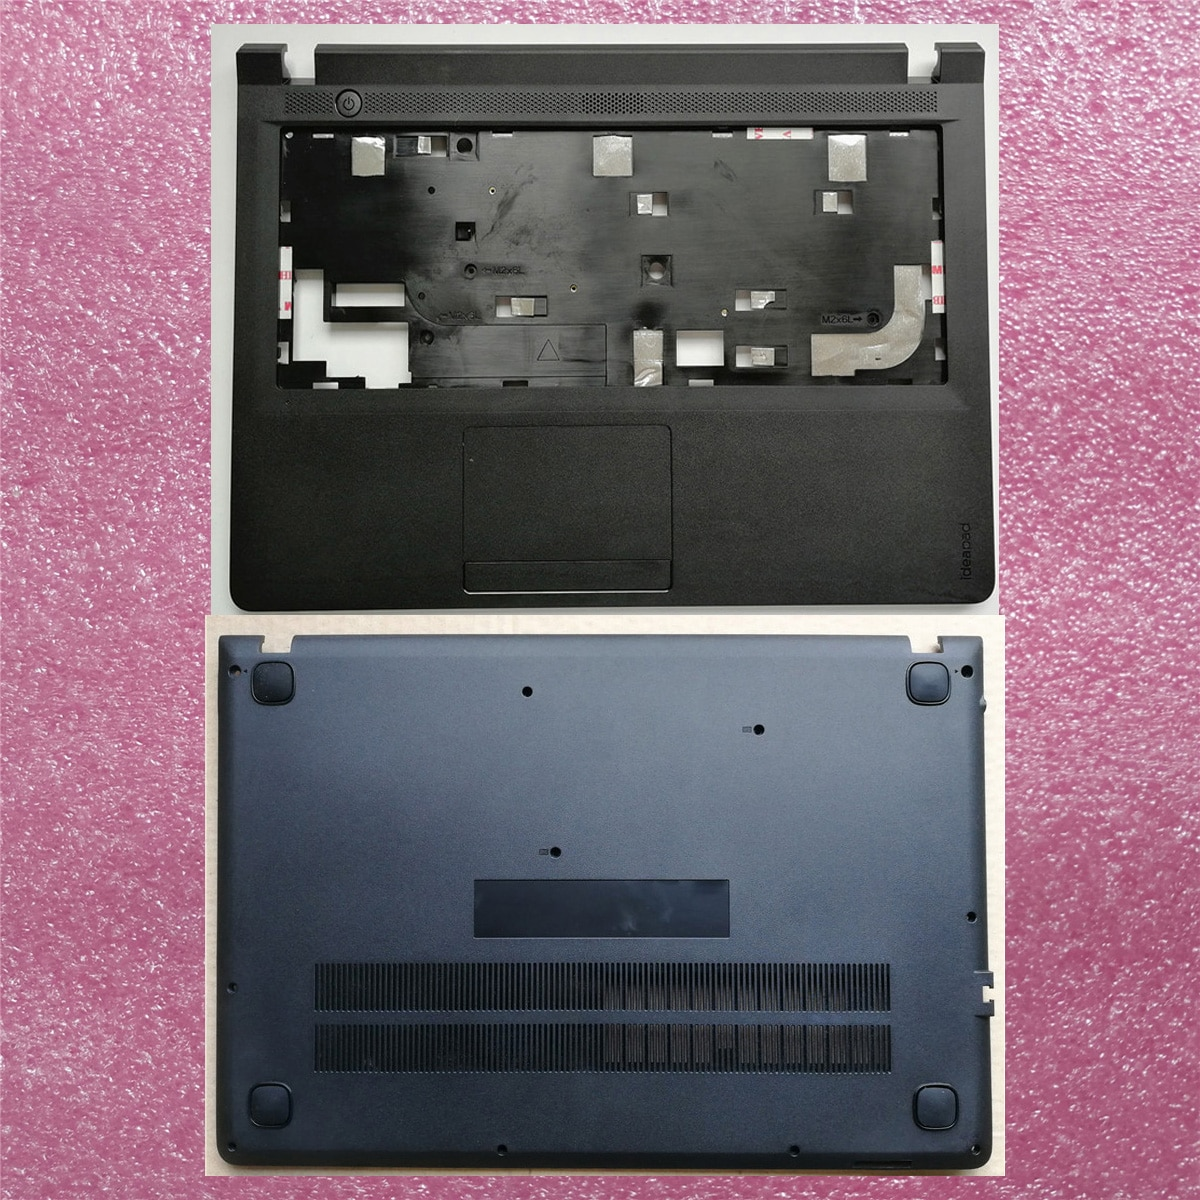 New case cover for Lenovo ideapad 100-14 100-14IBY Palmrest Cover Upper+ Bottom Base Cover 100% new lenovo g570 g575 bottom case cover